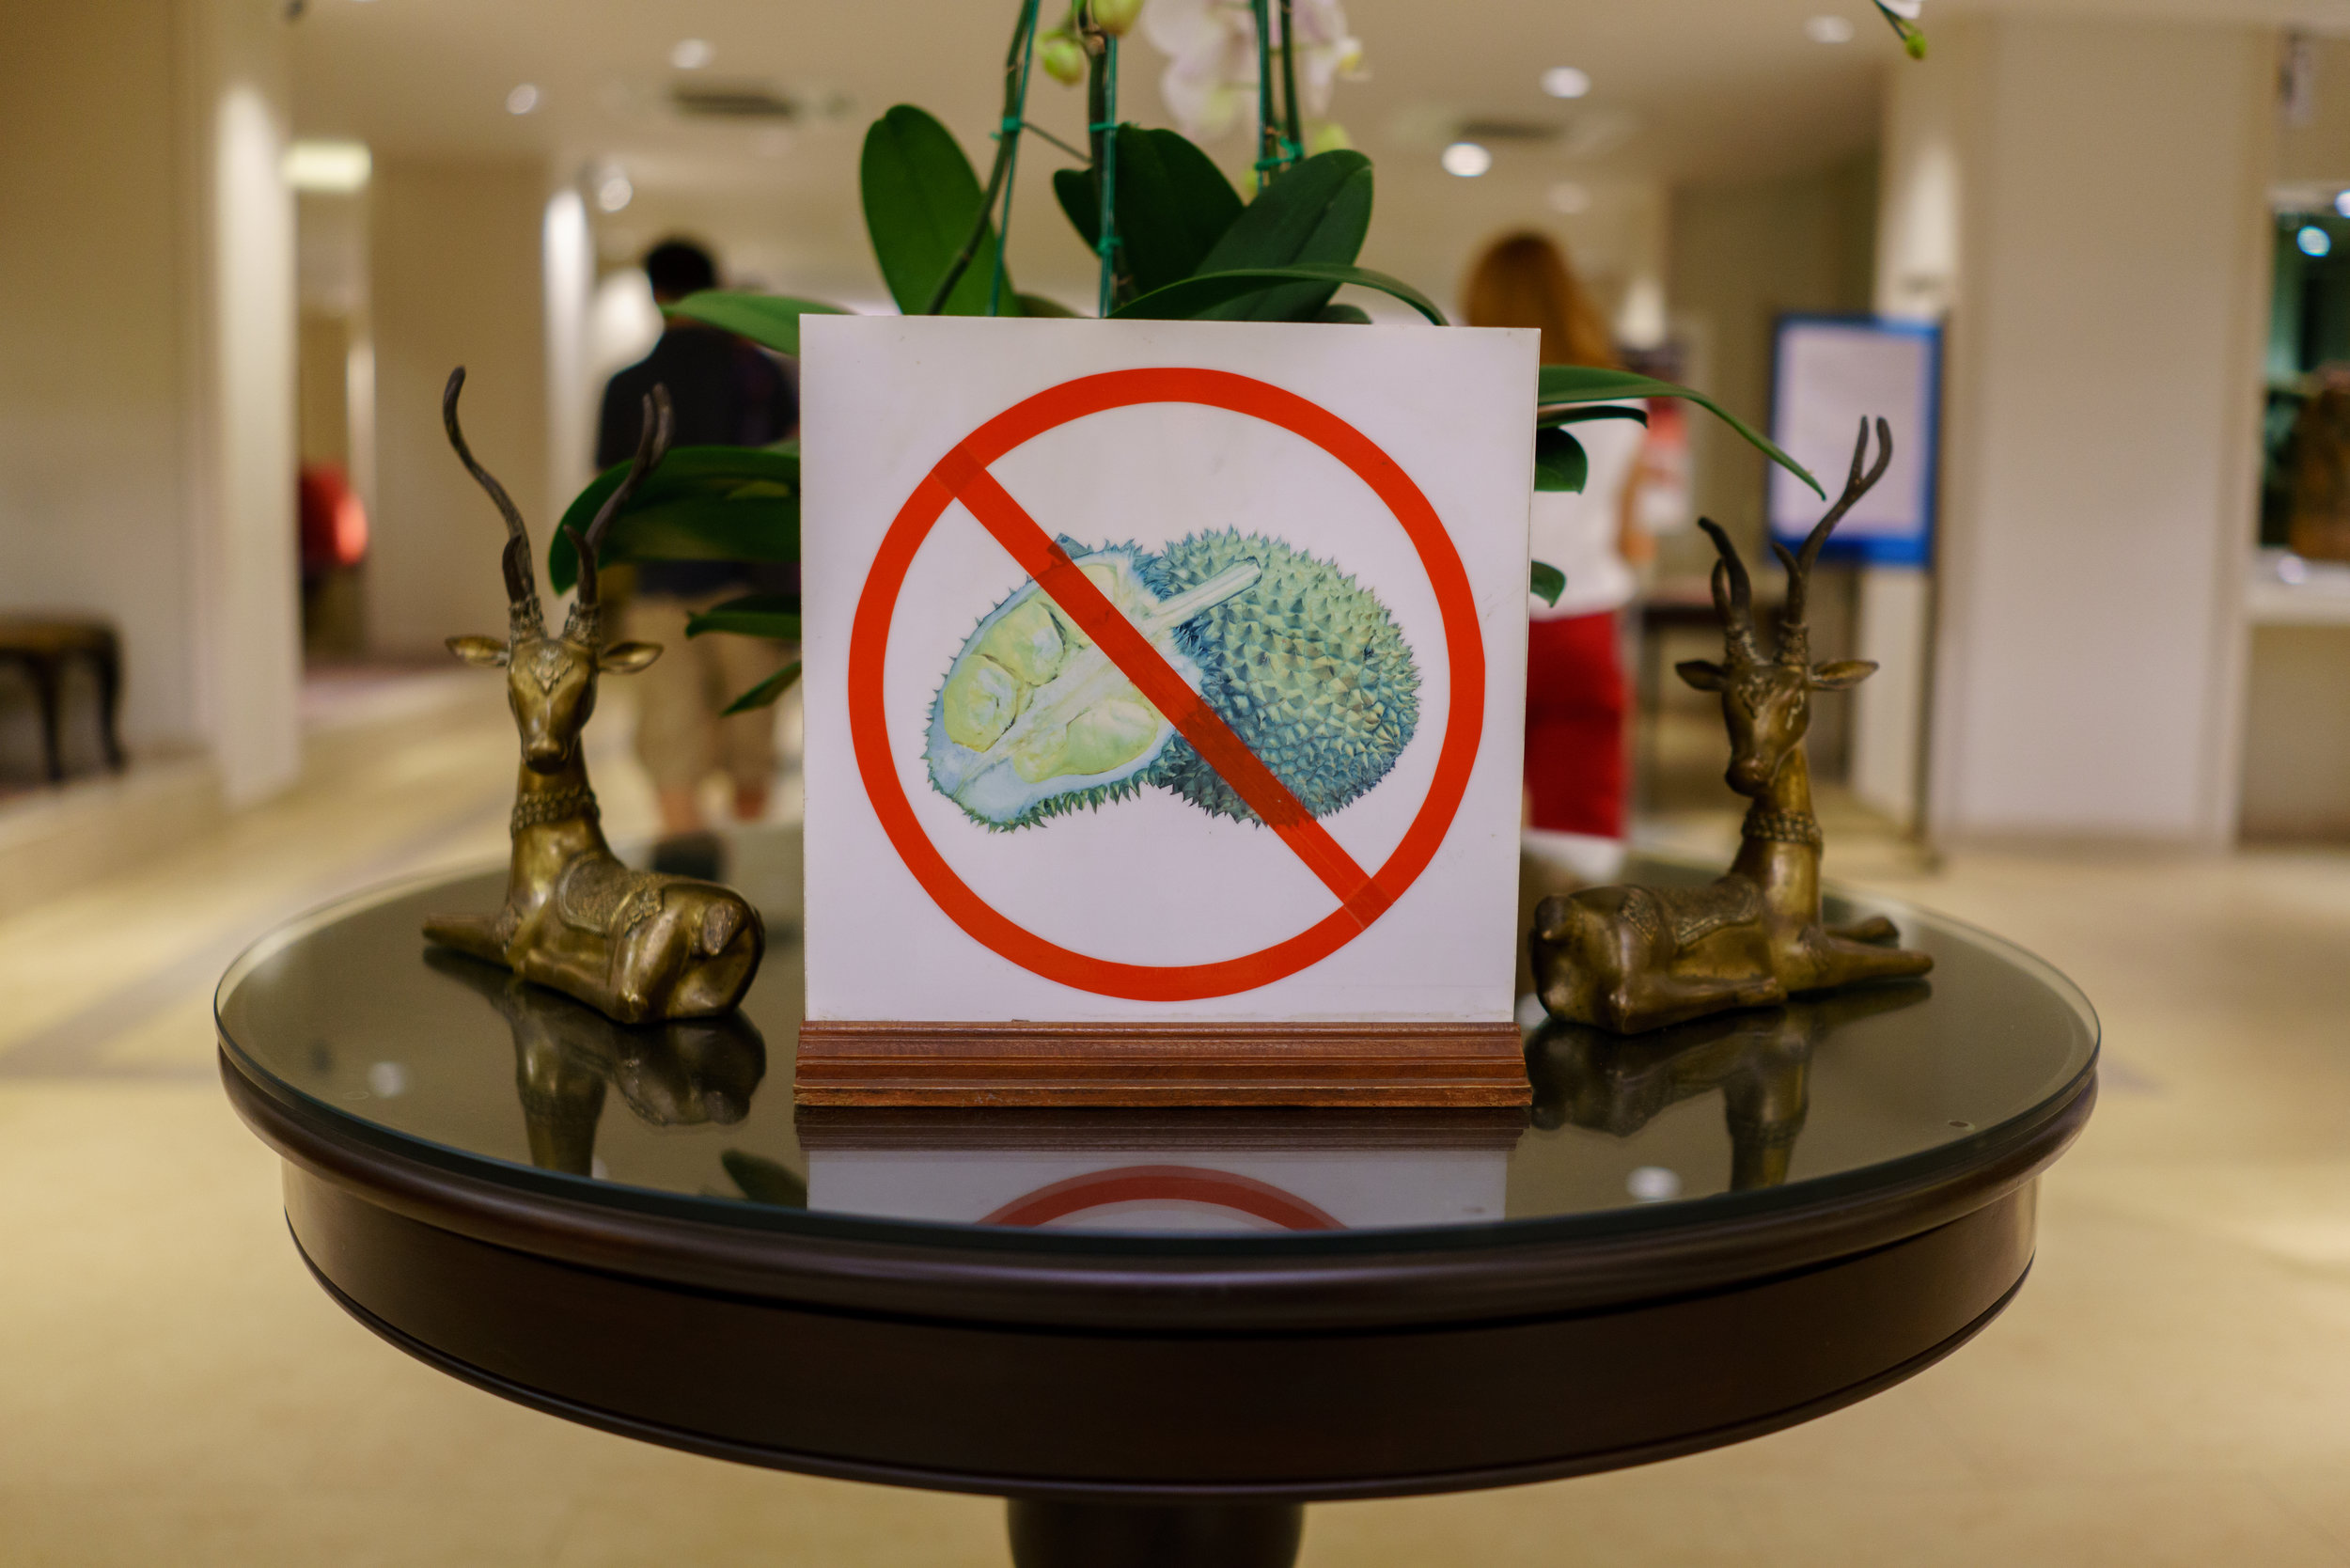 No durian allowed